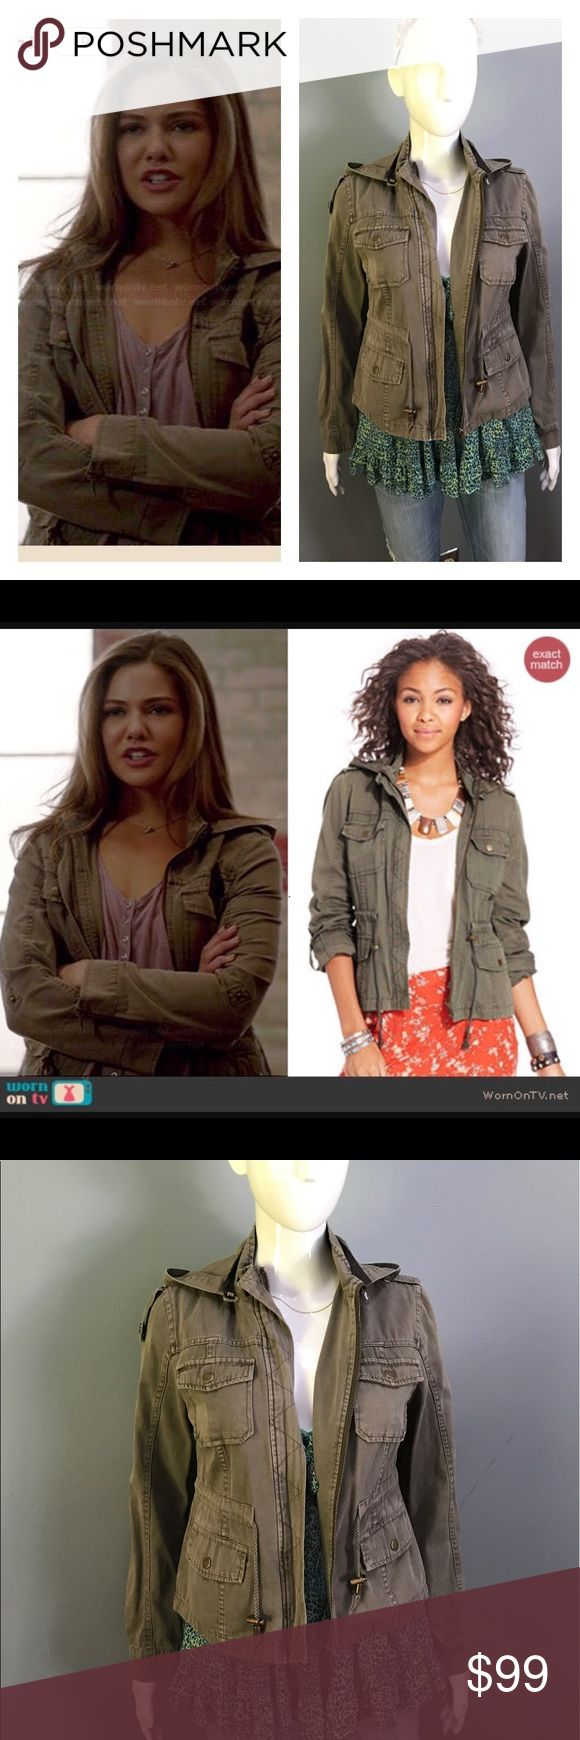 """Davina's Army Green Jacket On The Orginals Hooded Cargo Jacket by American Rag. Featured on The Originals episode """"The Brothers That Care Forgot' Season 2 Episode 8. American Rag Jackets & Coats Utility Jackets"""